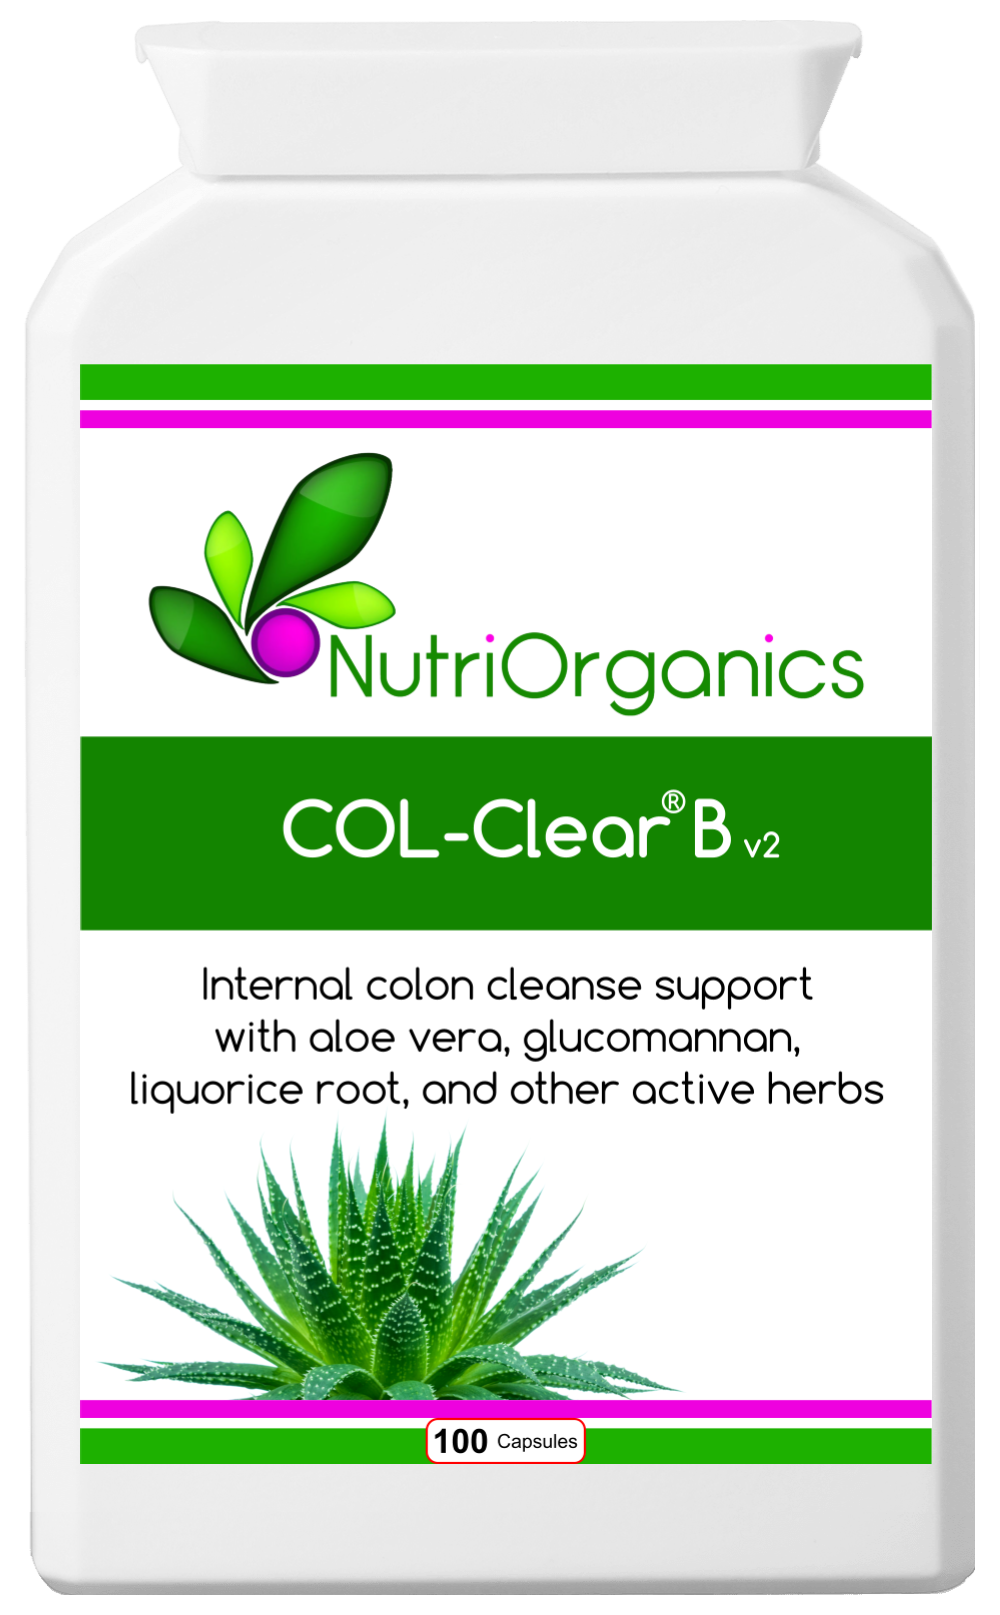 Herbal Colon Cleanse - COL-Clear B v2